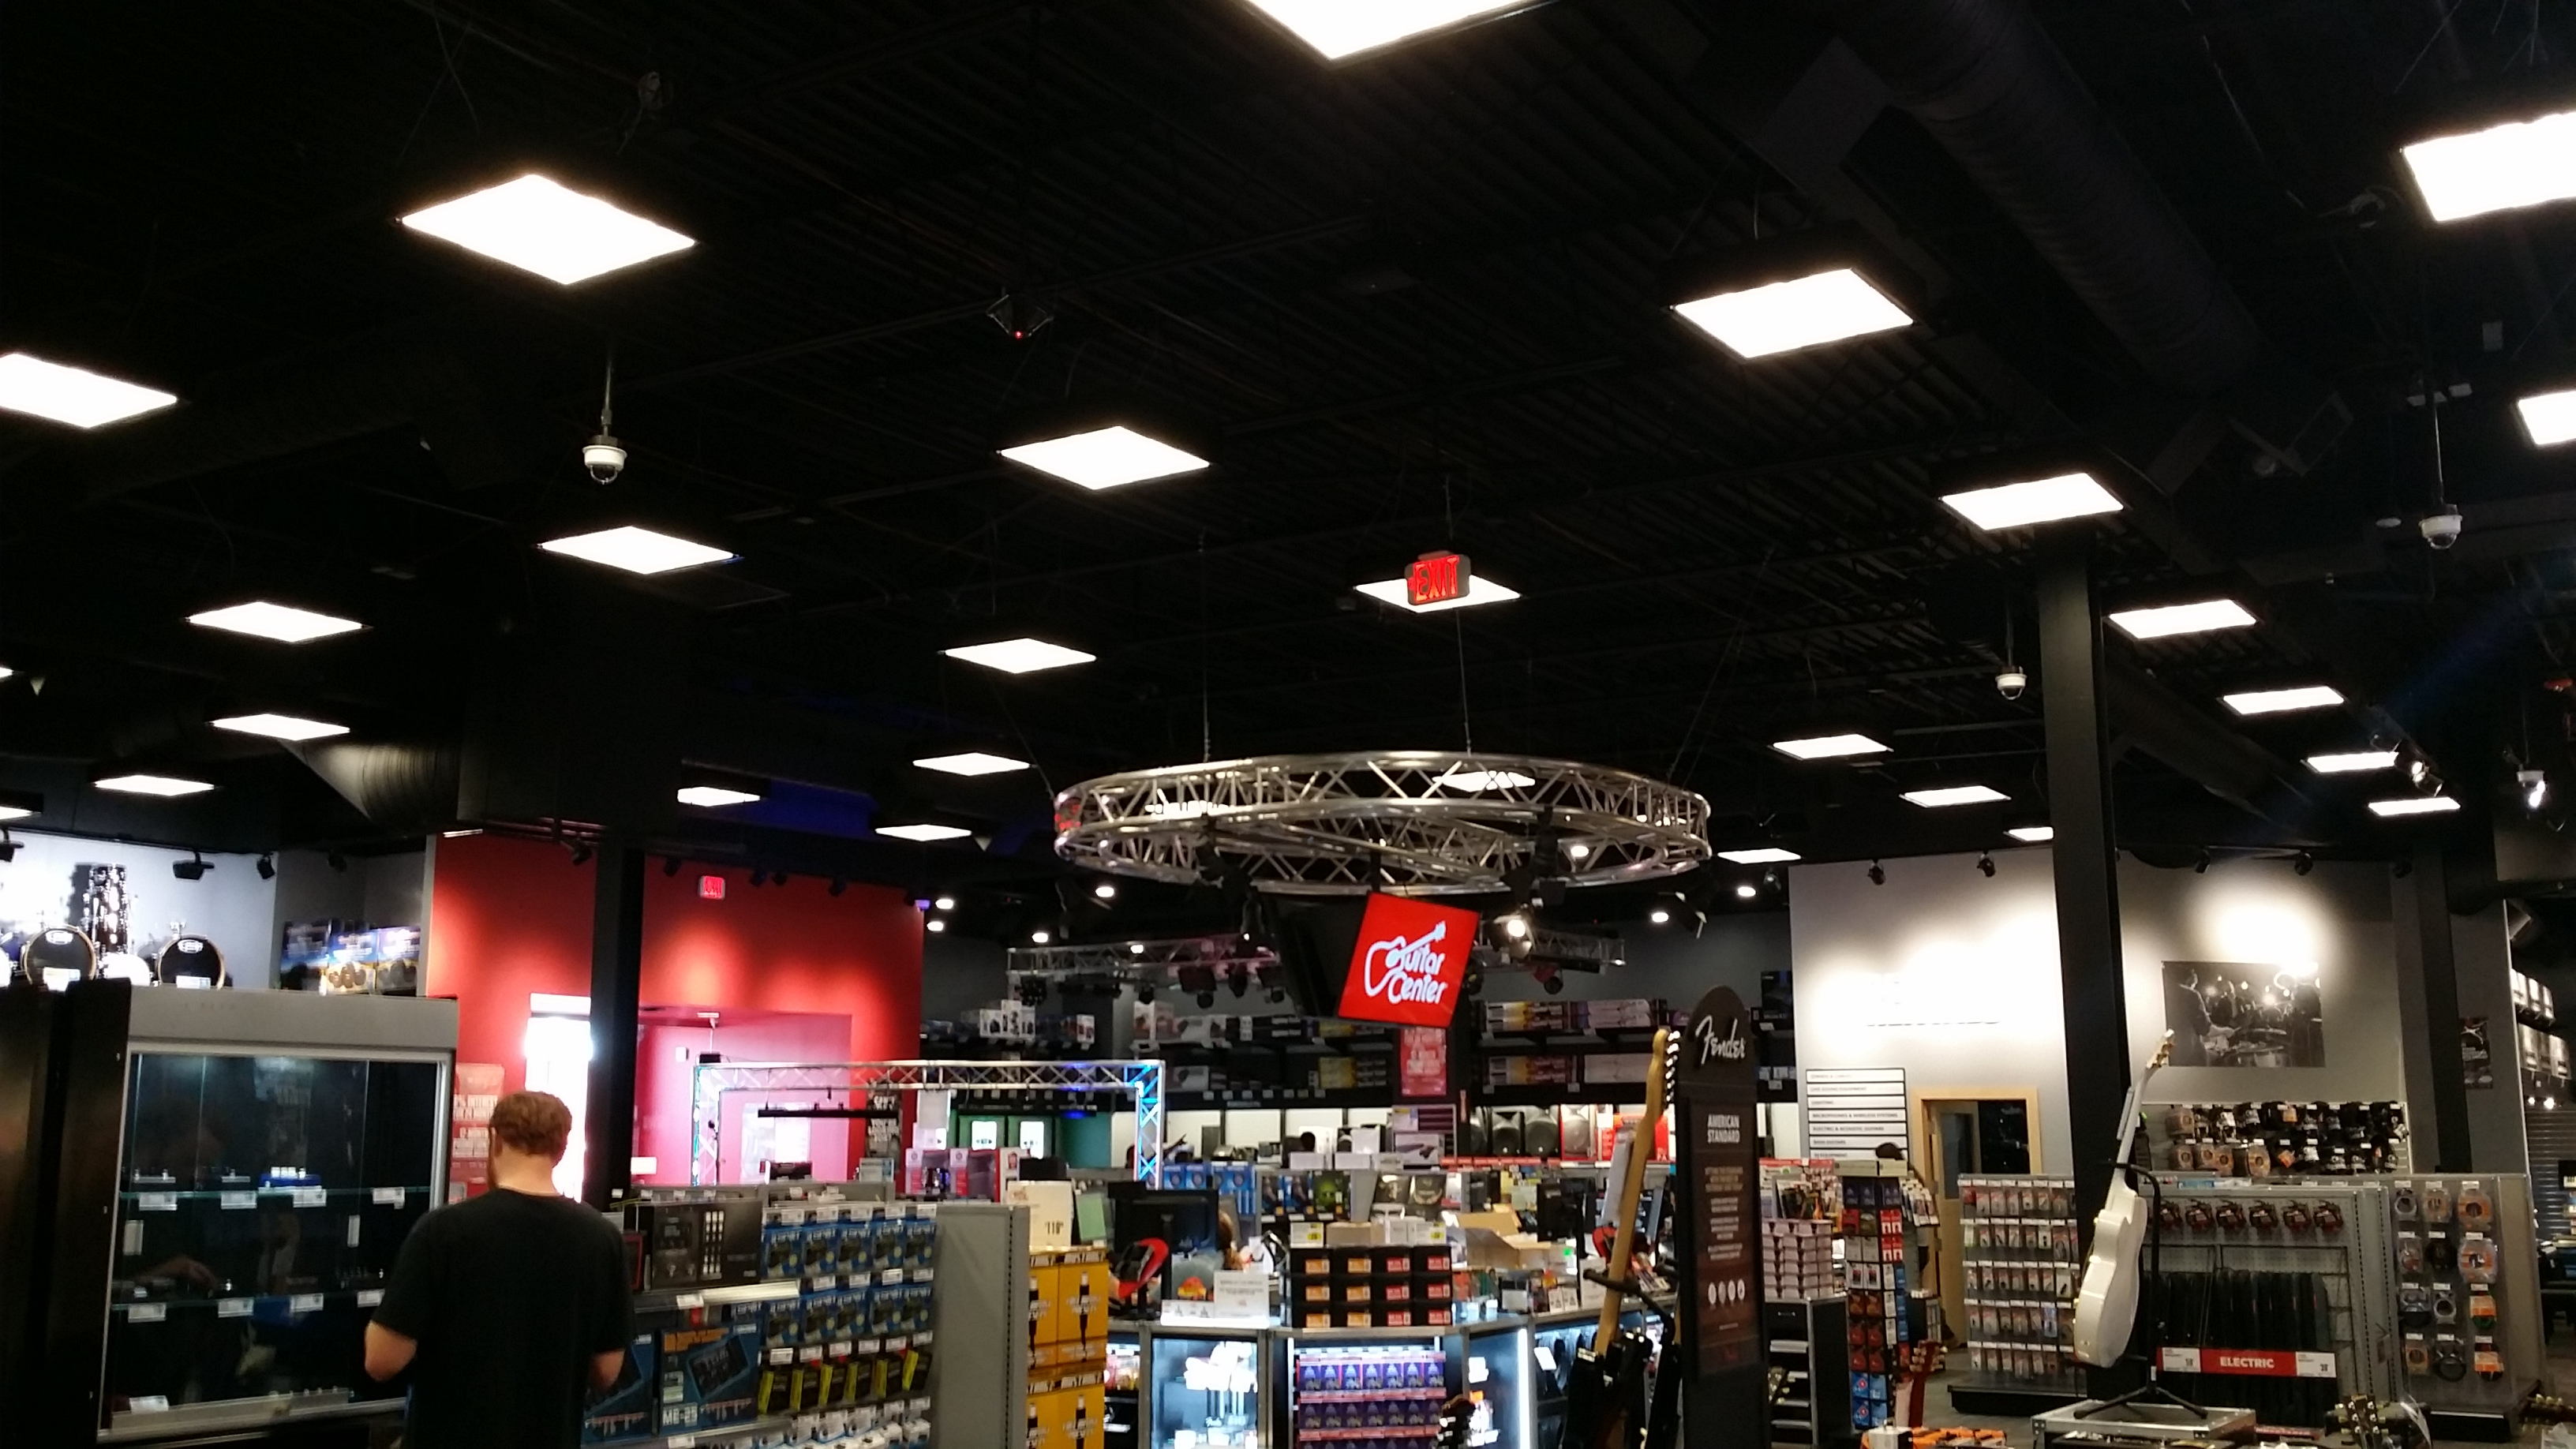 ... Guitar Center - Selden N.Y. & Swift Acoustics Inc. - Guitar Center - Selden N.Y. Images | ProView